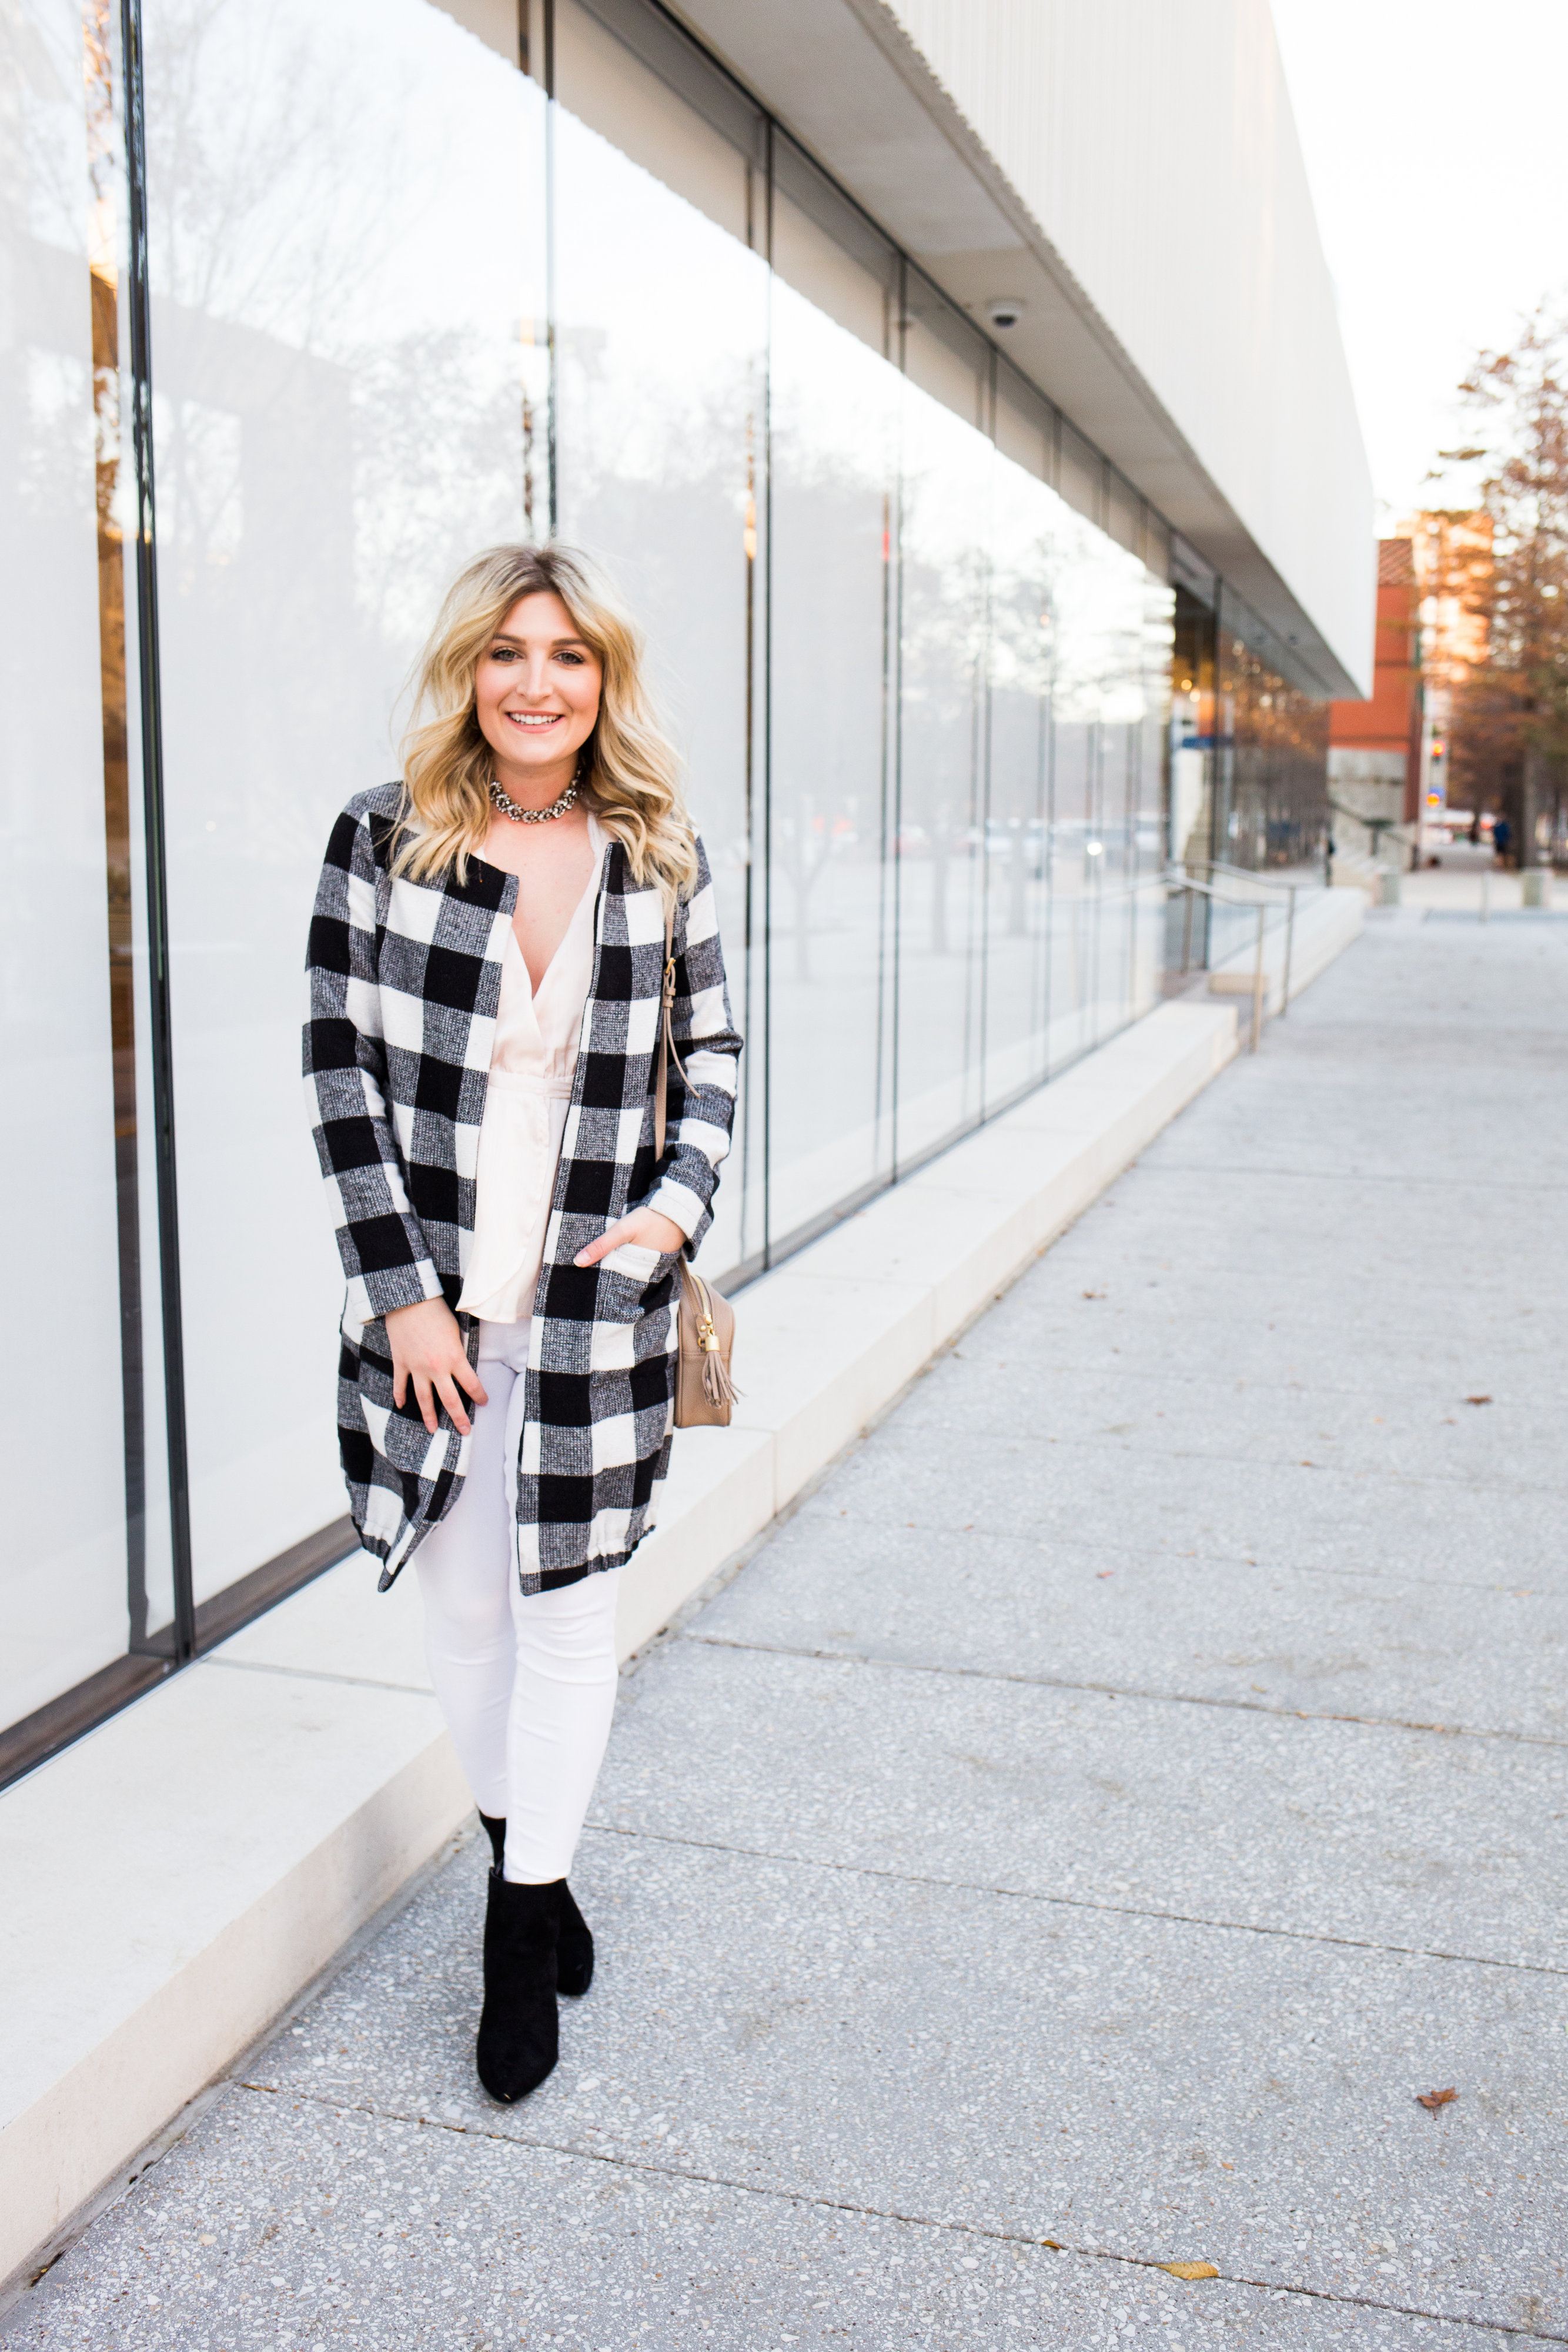 Checkered Winter Coat + Soft Winter Colors